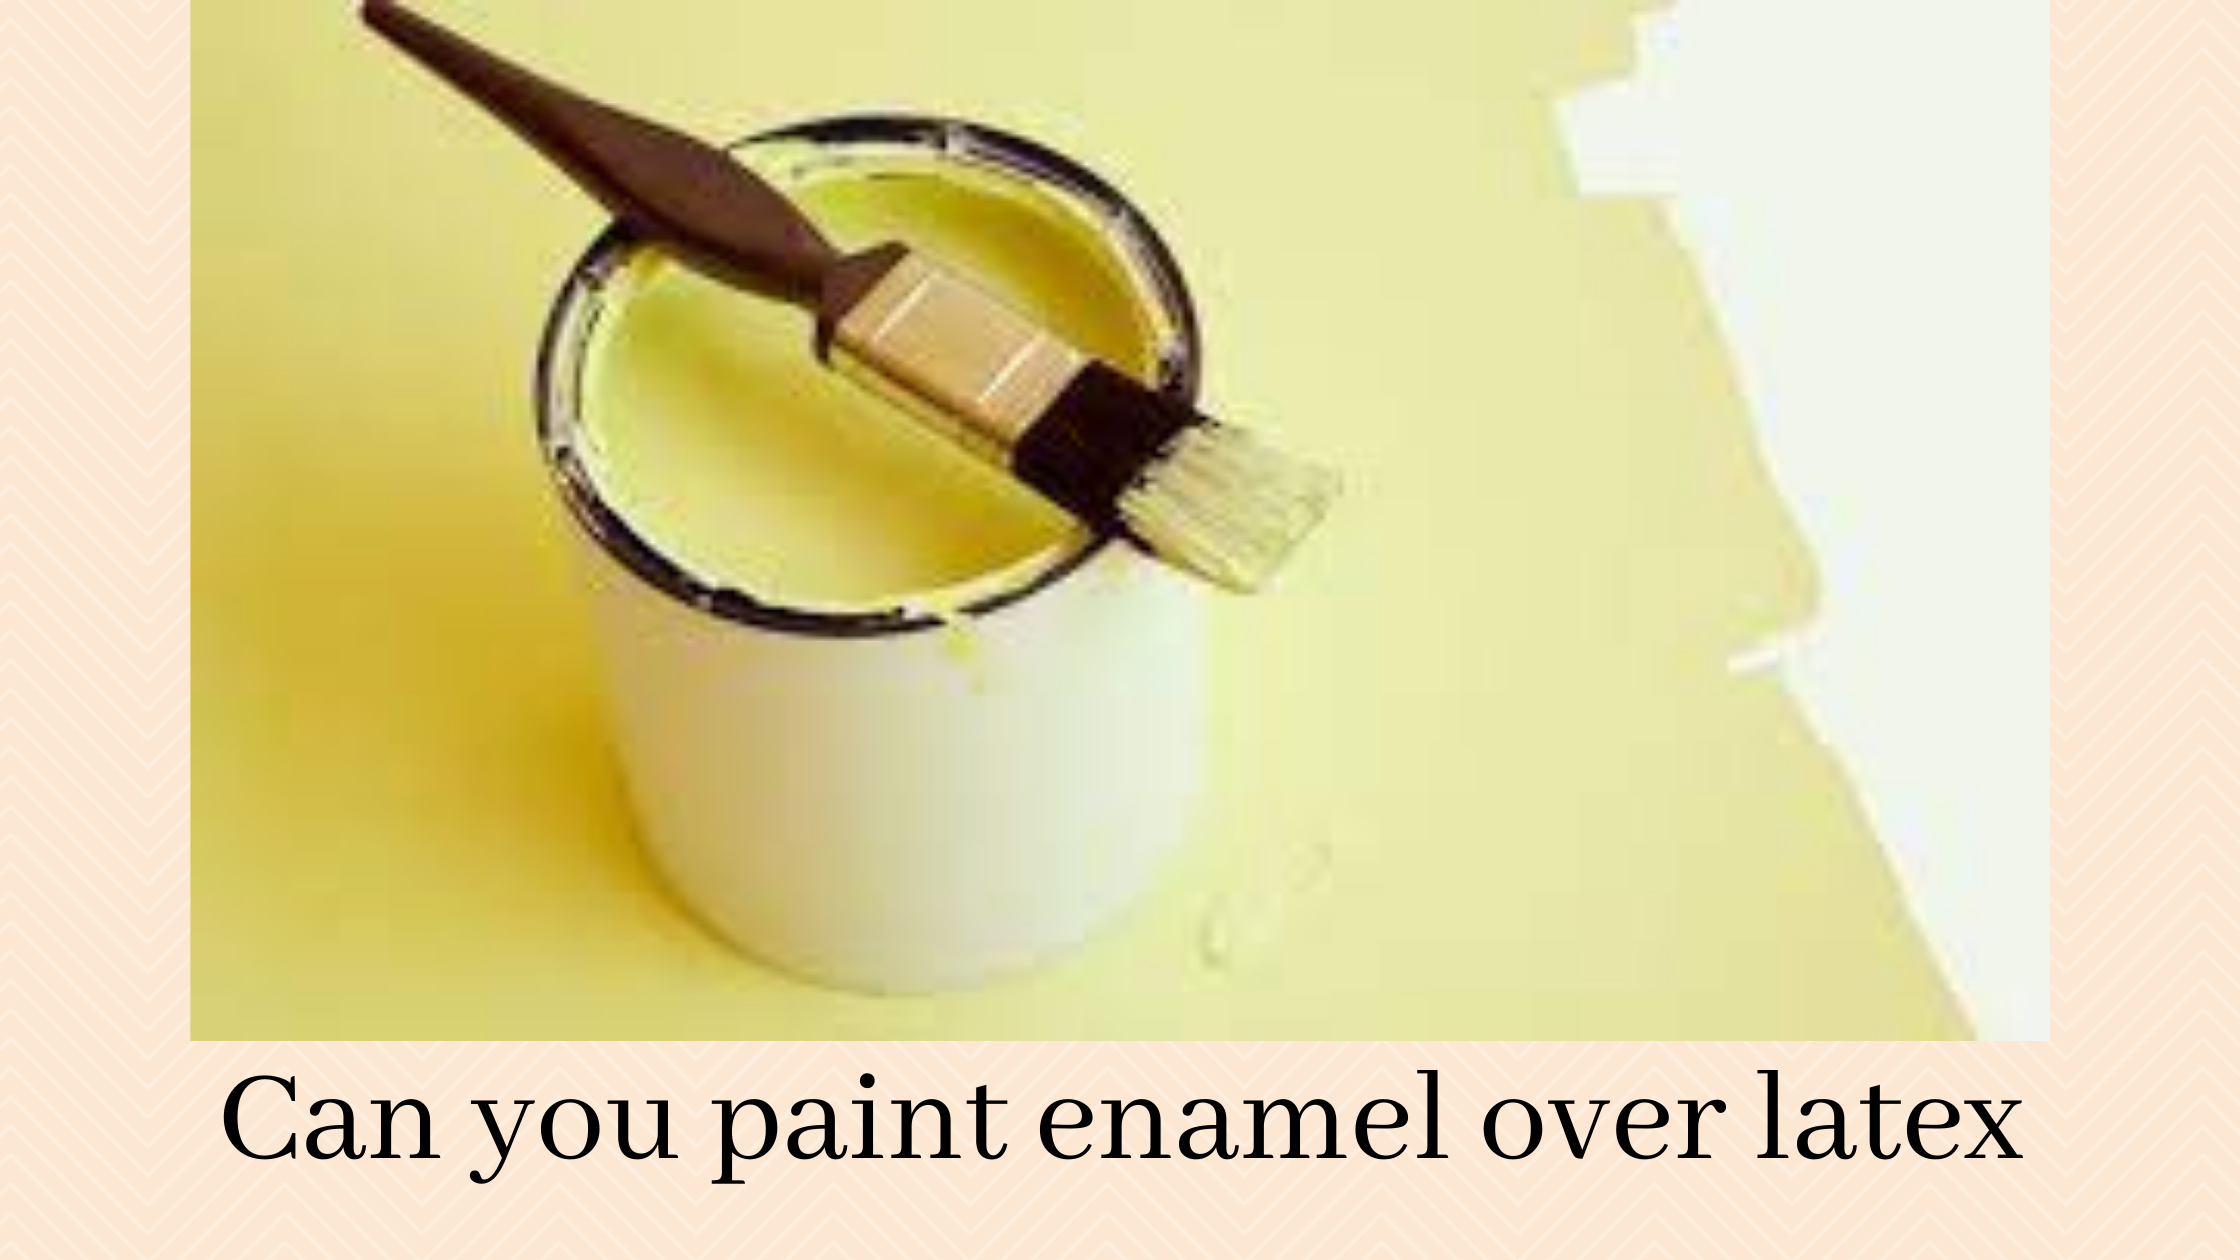 Can you paint enamel over latex